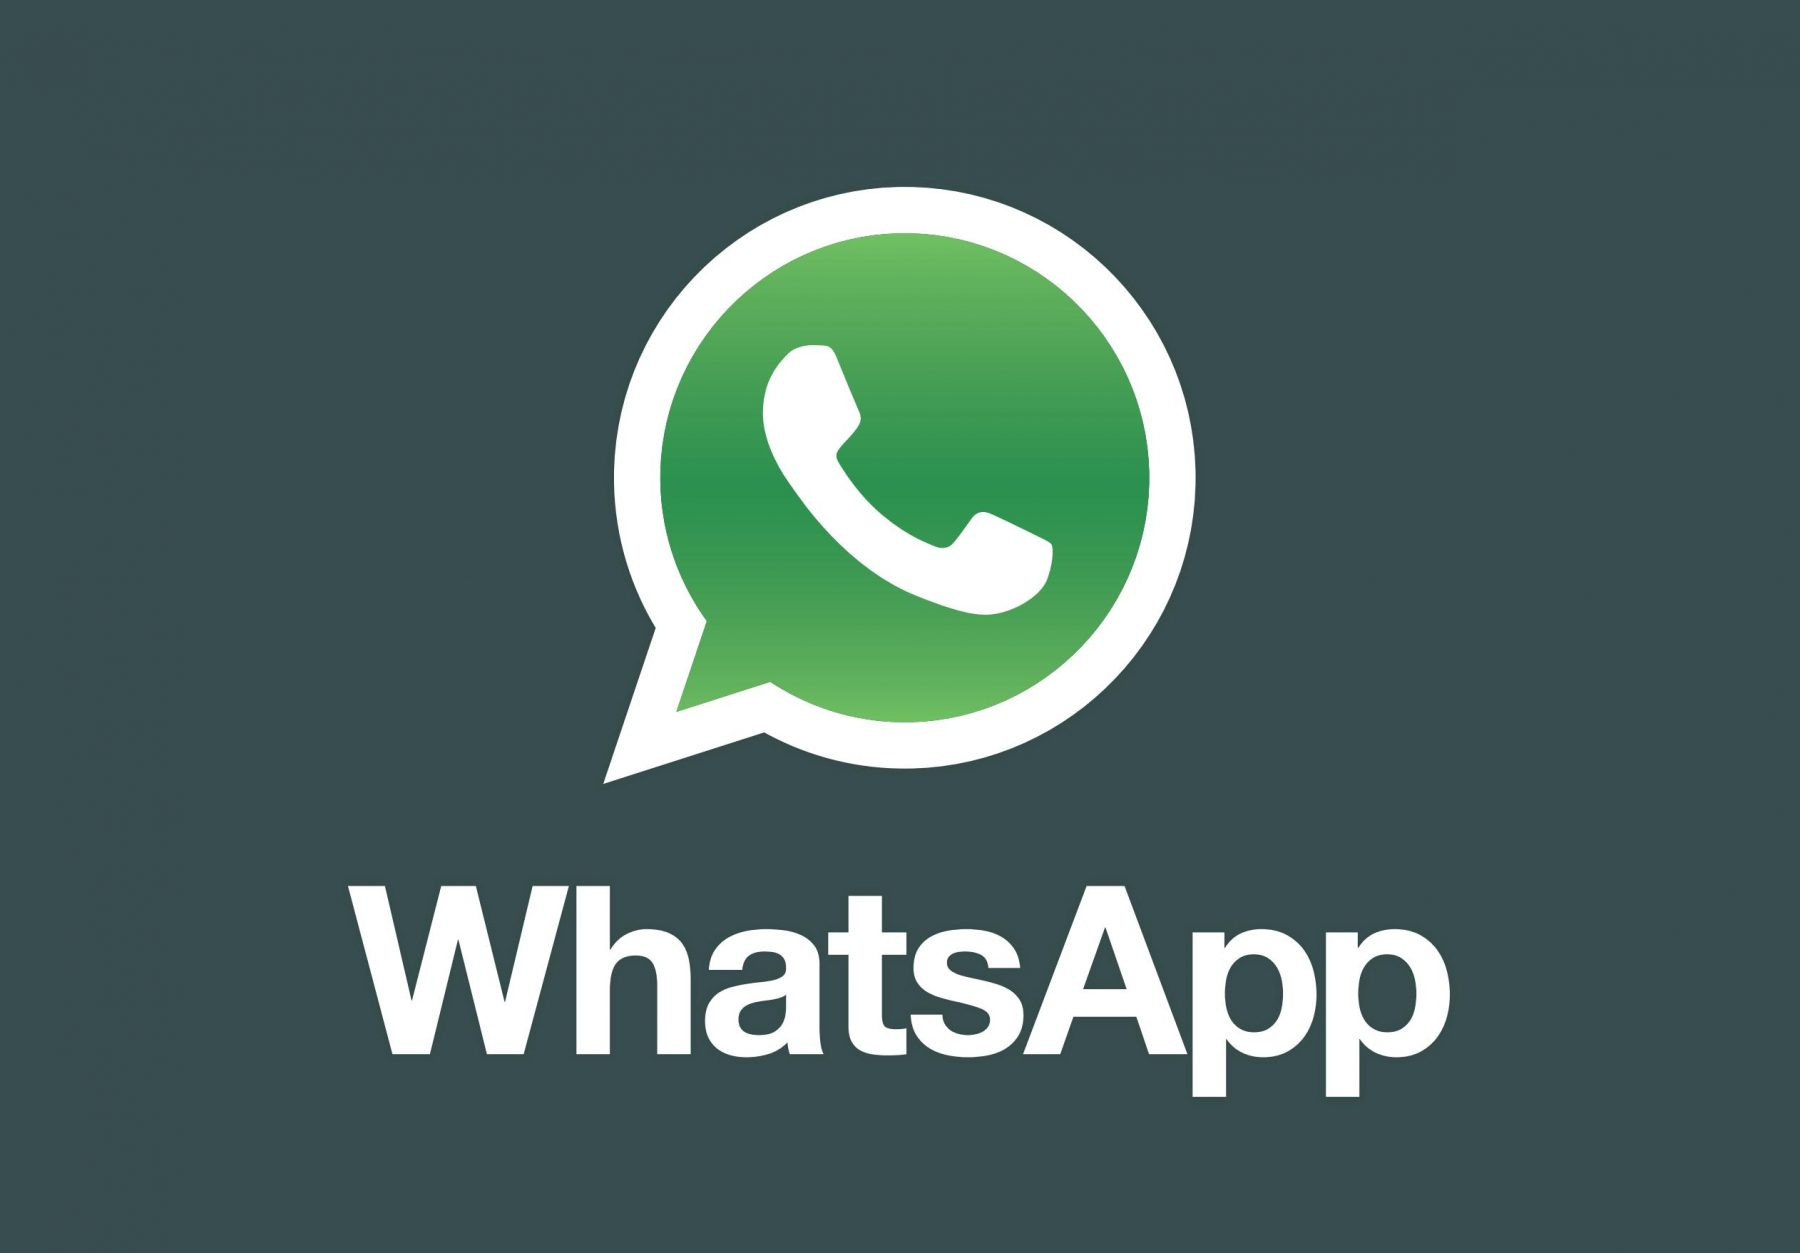 WhatsApp Messenger 2.16.233 Beta